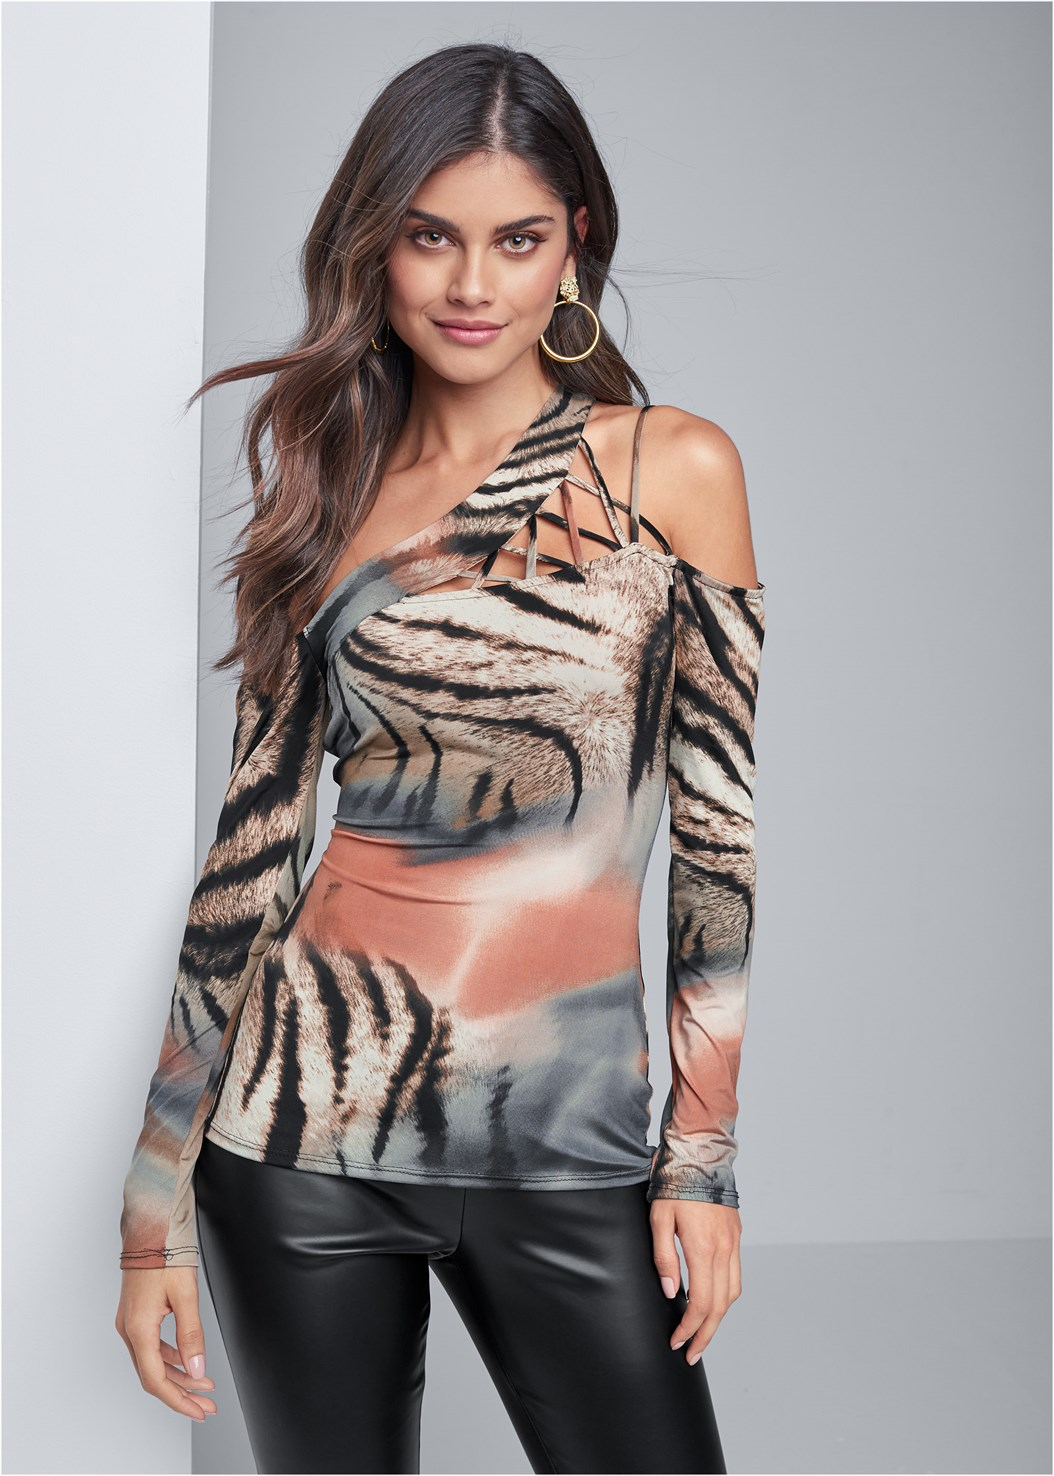 Animal Print Strappy Top,Faux Leather Leggings,Full Figure Strapless Bra,Lucite Strap Heels,Tiger Detail Earrings